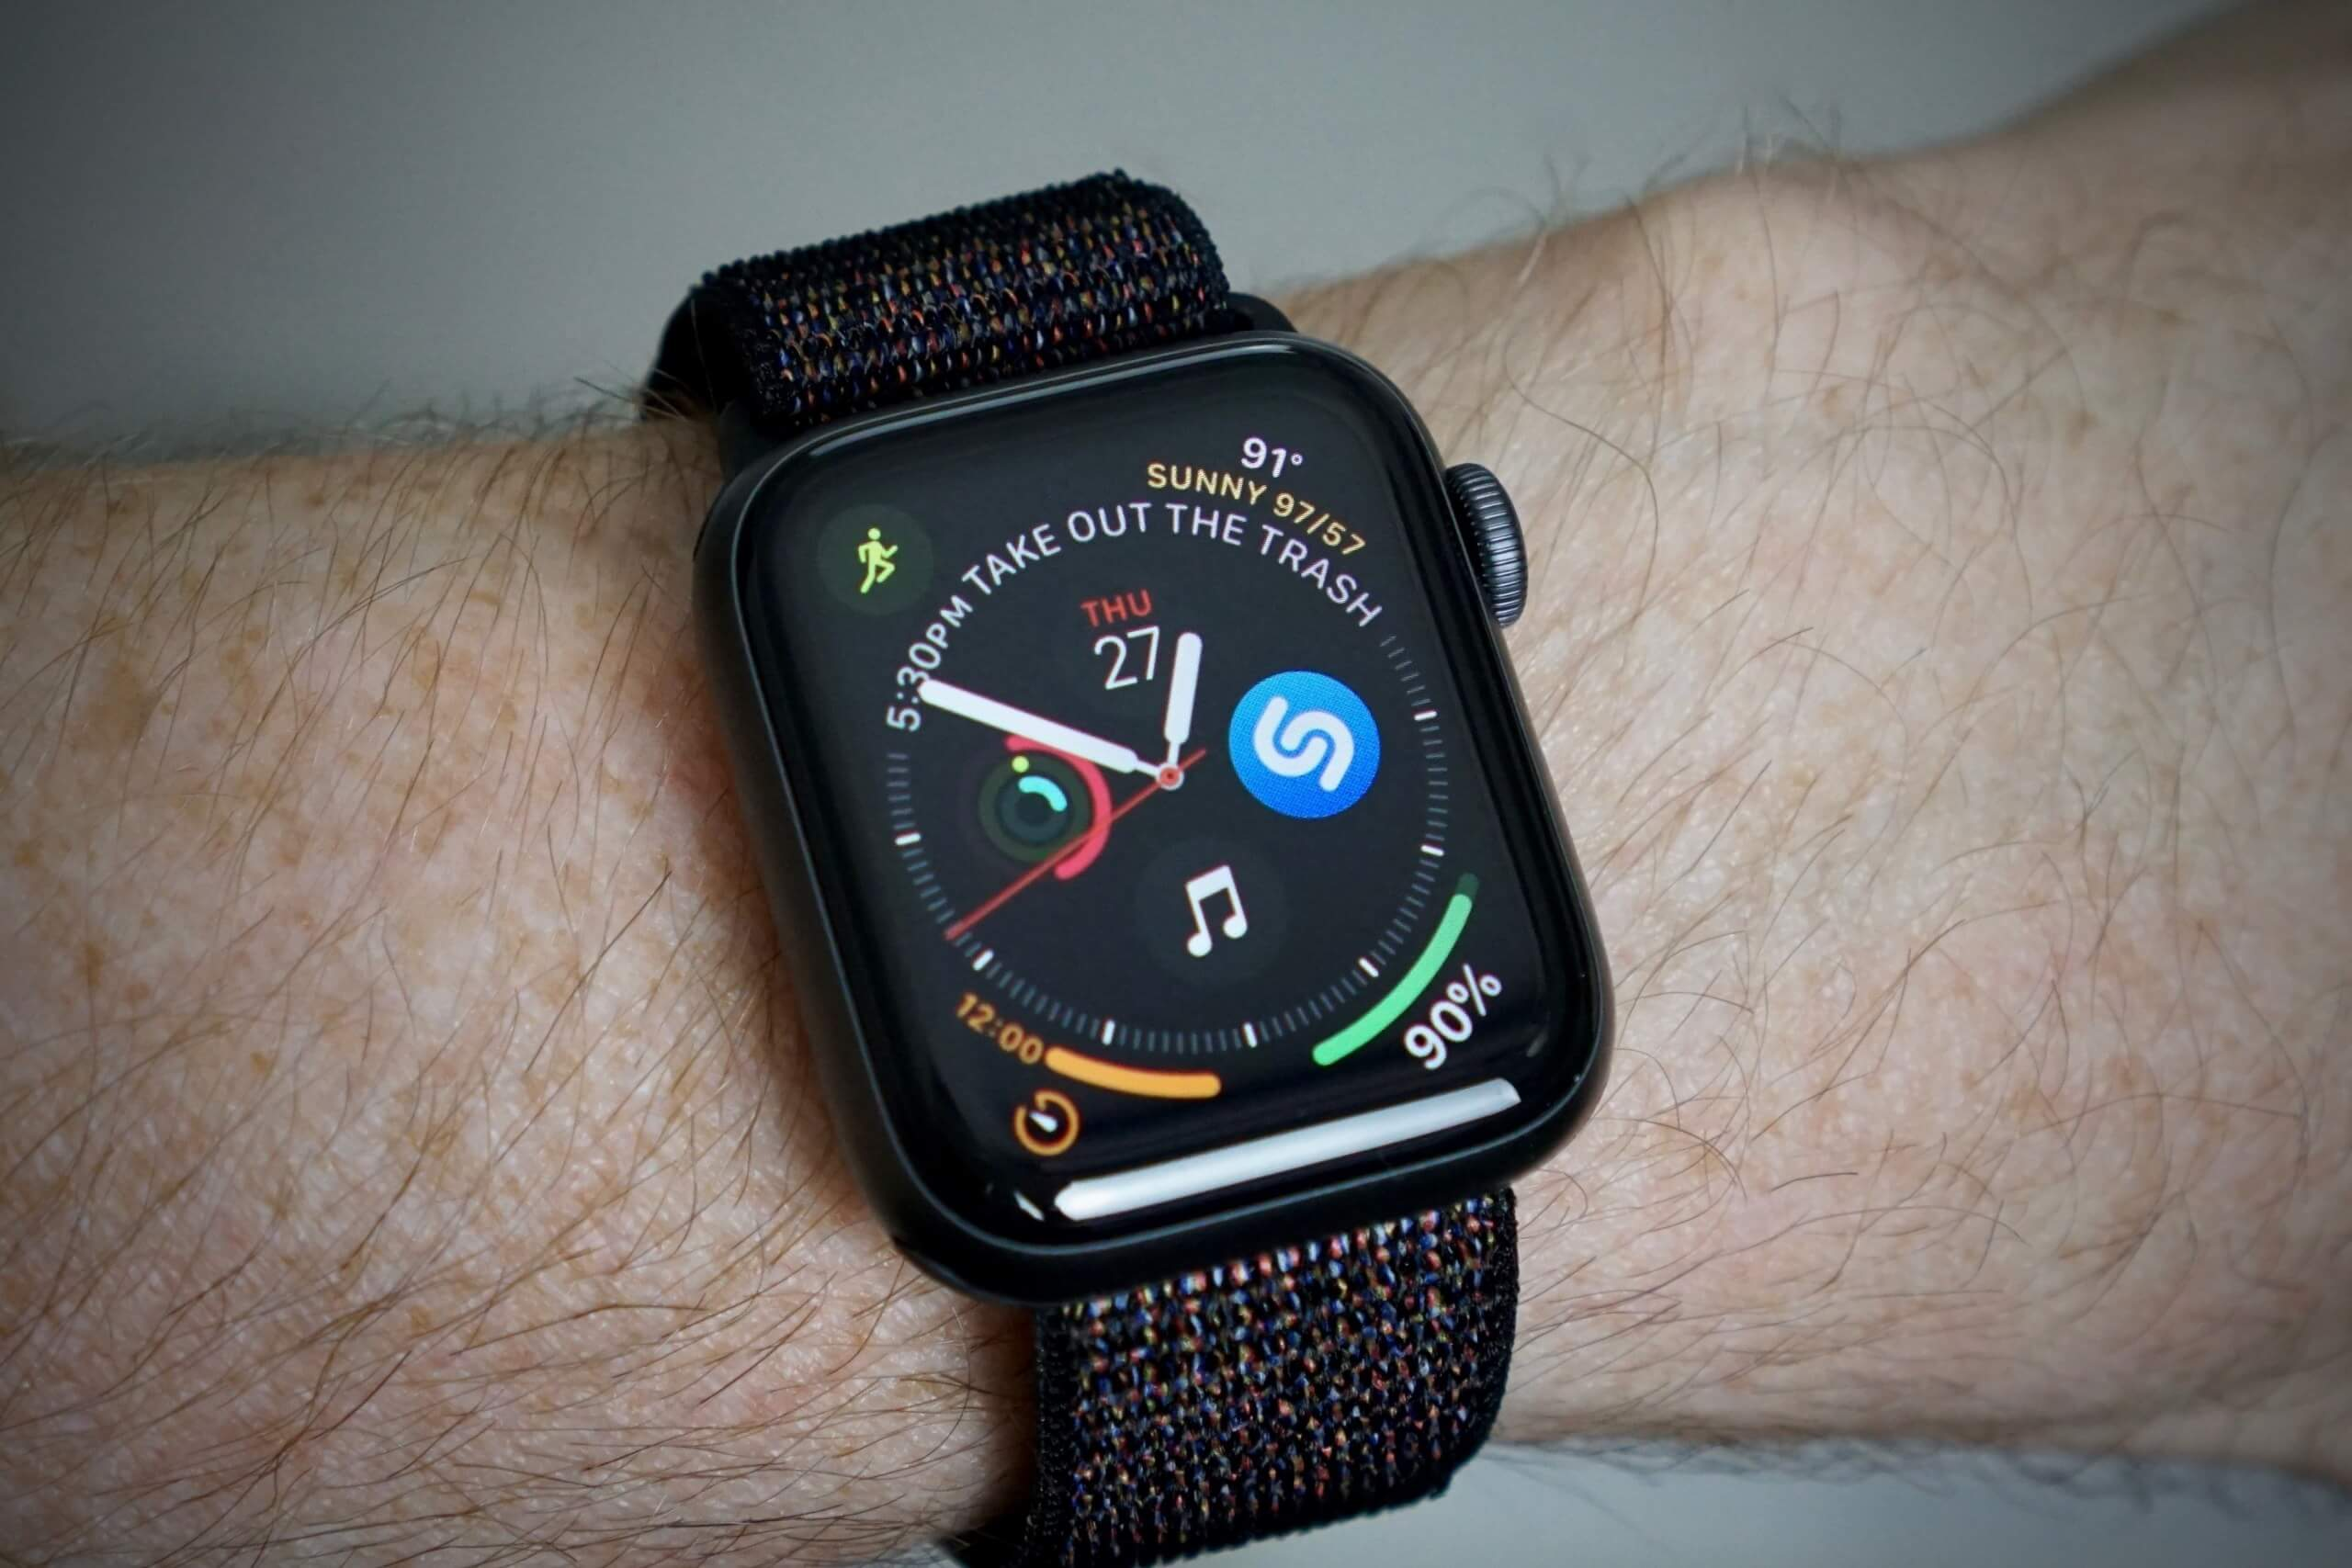 Apple Watch might be getting a native App Store - TechSpot